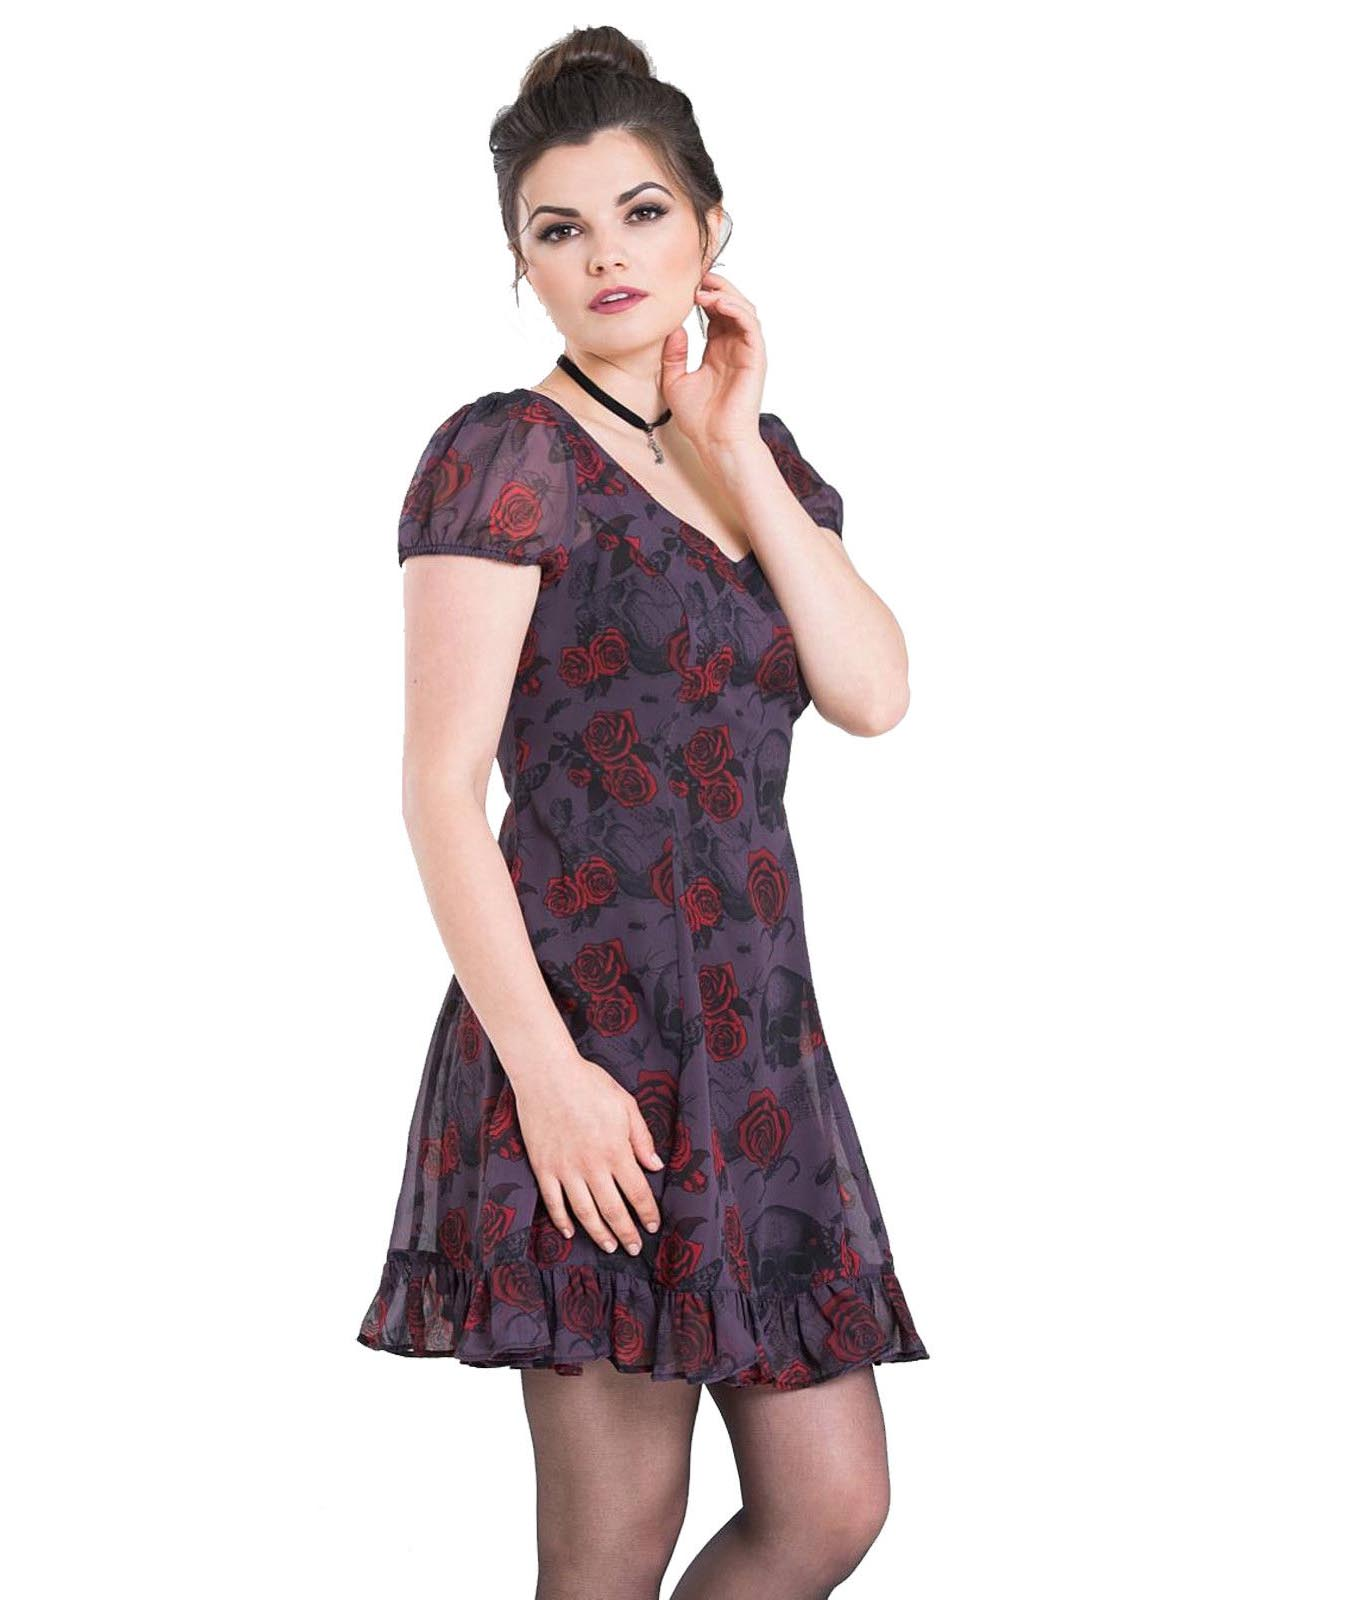 Hell-Bunny-Goth-Floaty-Mini-Dress-BUGS-amp-ROSES-Skulls-Butterfly-Purple-All-Sizes thumbnail 15